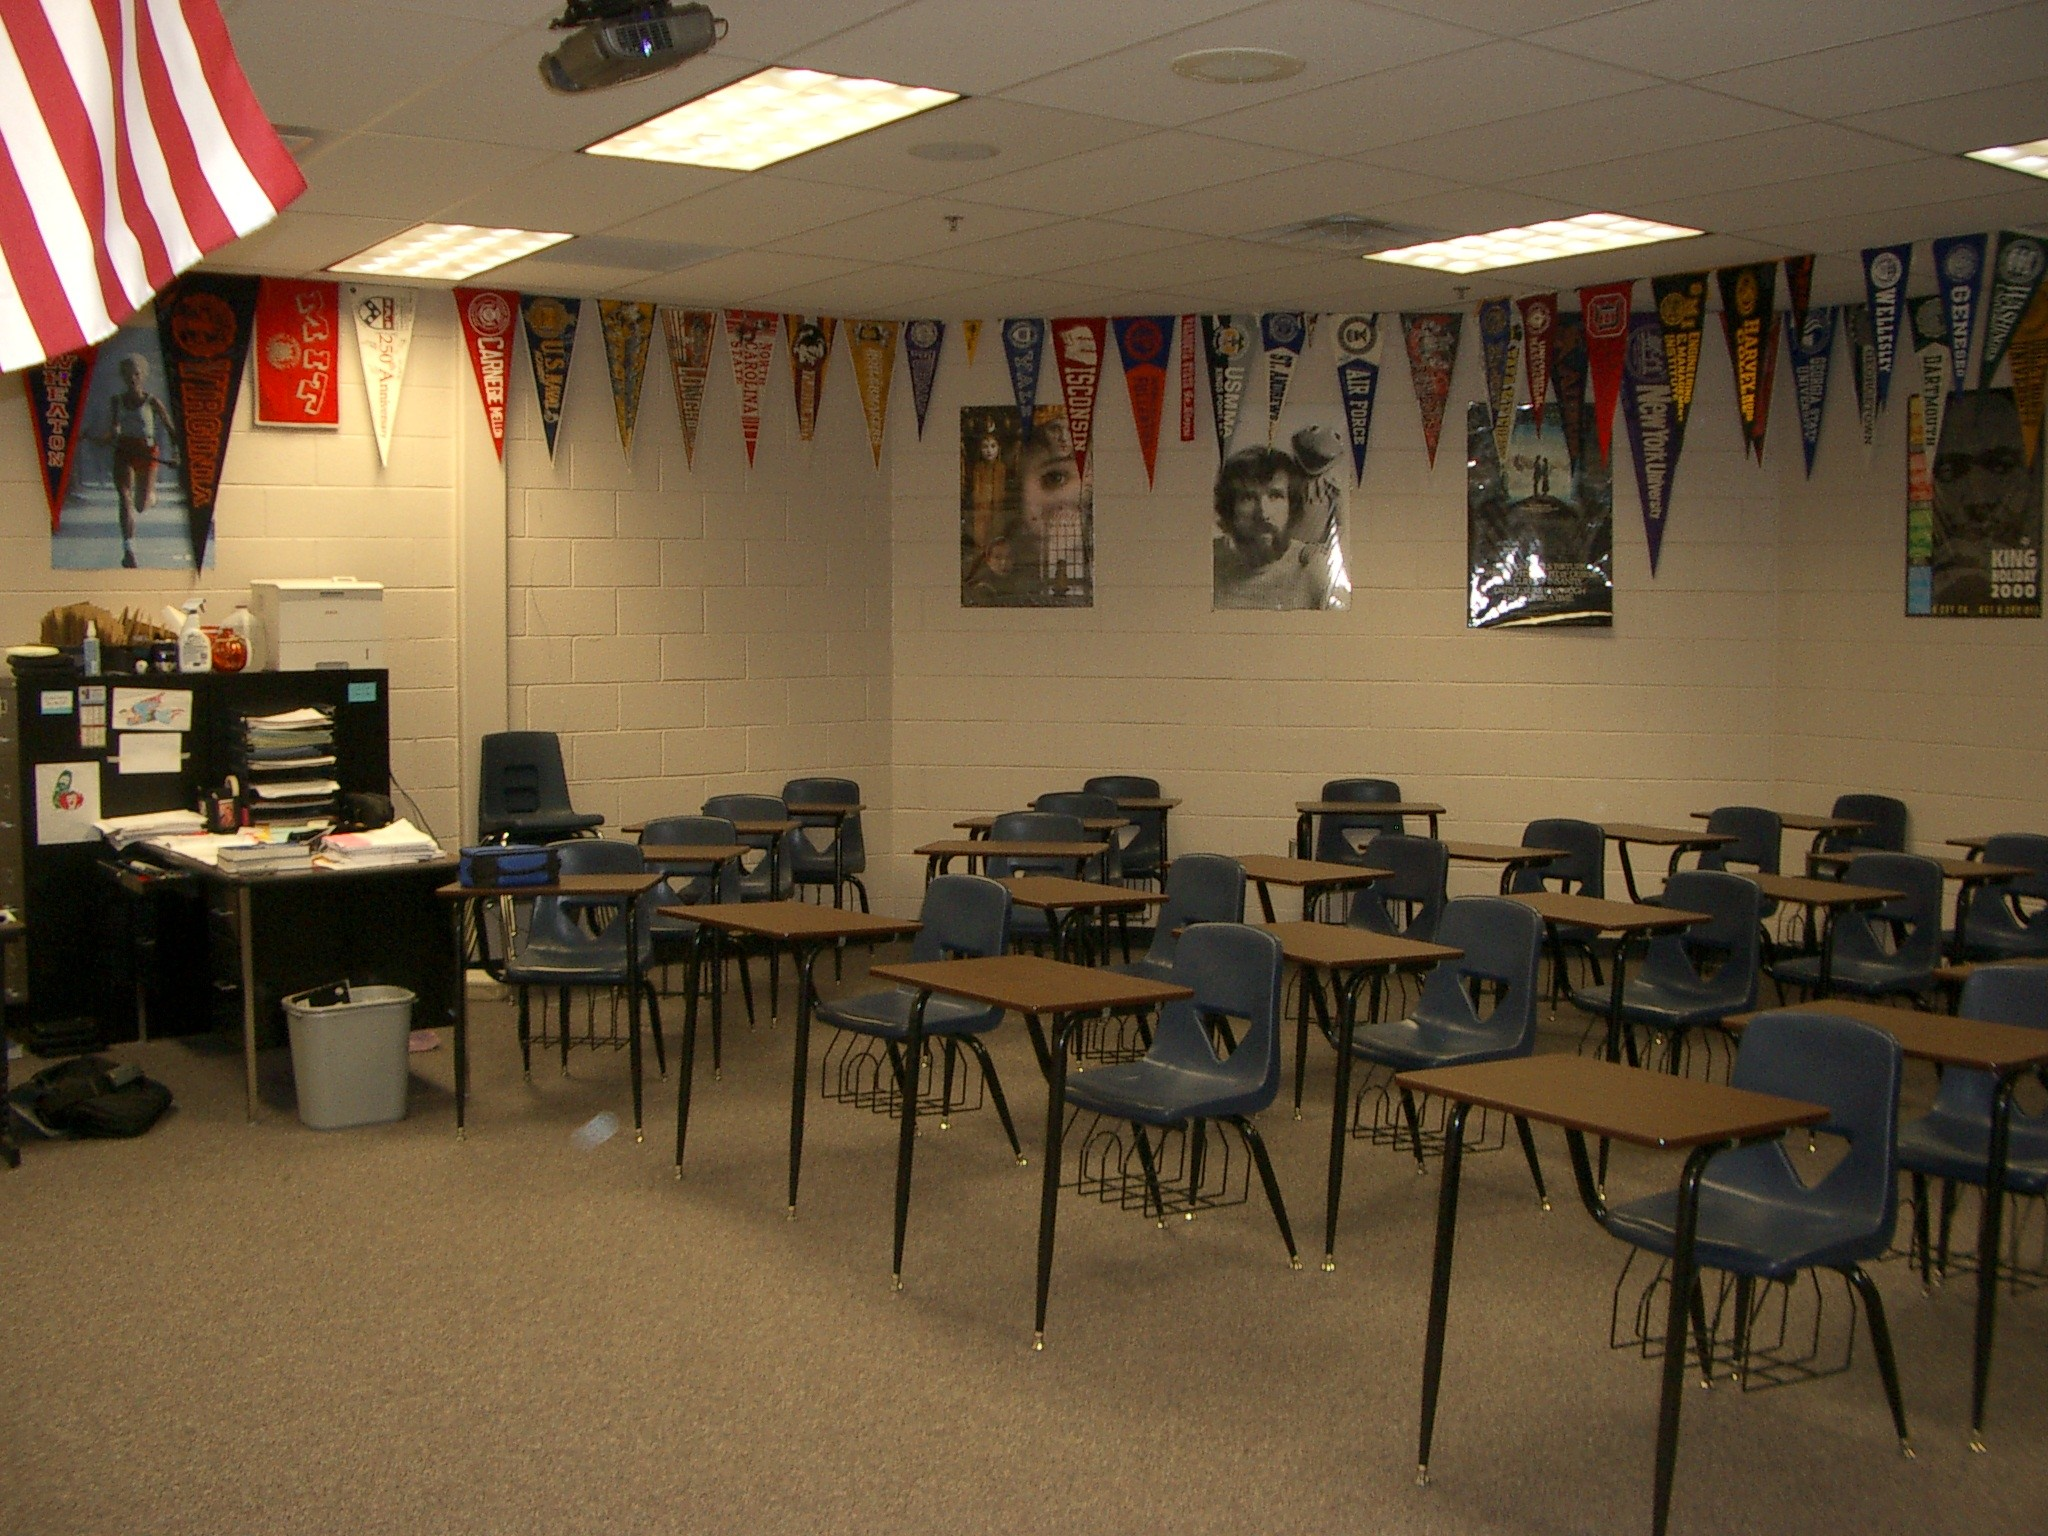 2048x1536 File:Walton High School New Classroom.JPG